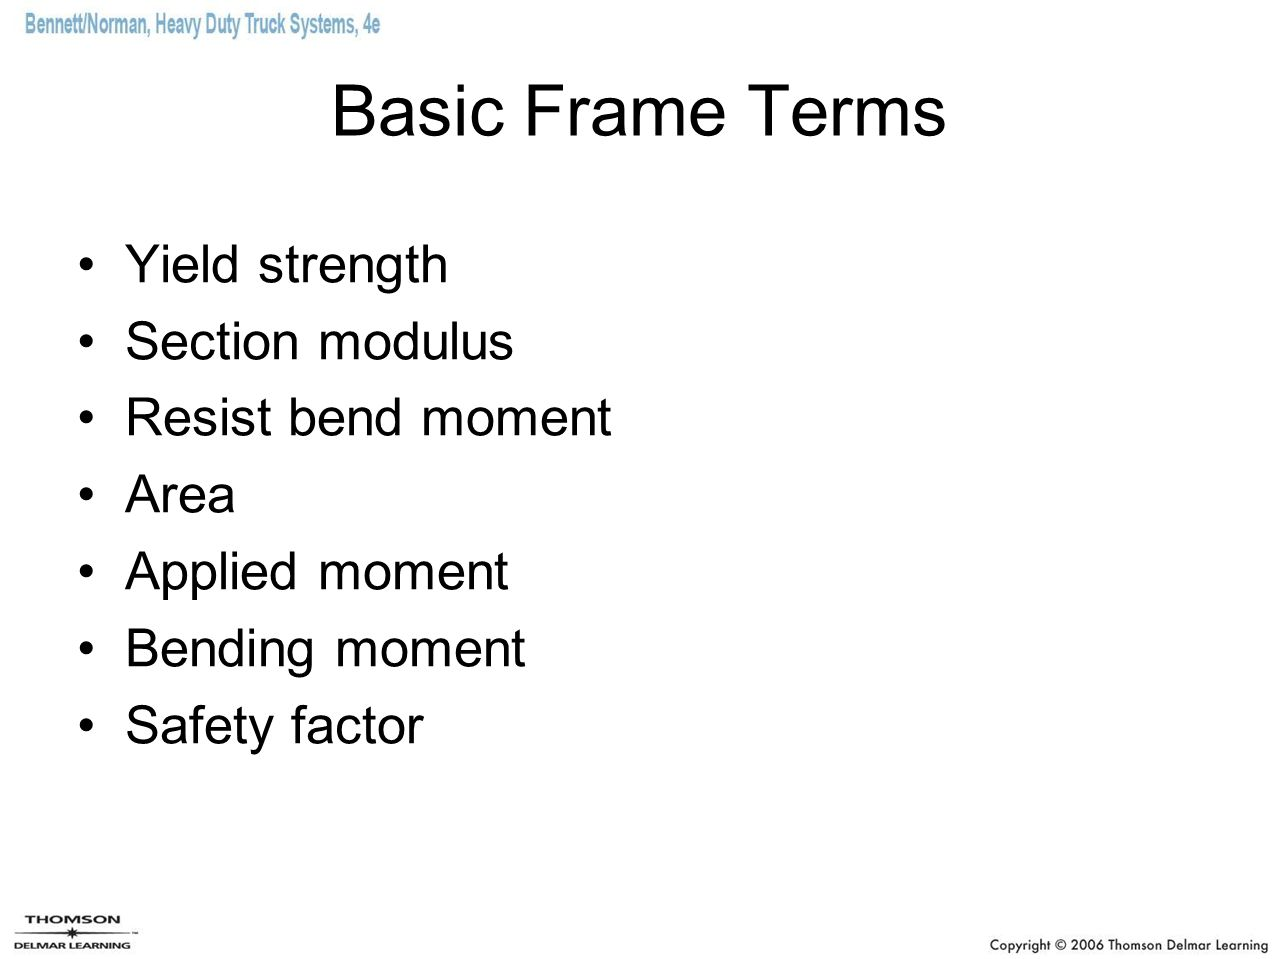 Frame Construction Two-element rail –Consists of the main frame rail and a single inside channel frame reinforcement Three-element rail –Consists of the main frame rail and two frame reinforcements, a single inside channel, and a single outside channel frame reinforcement Four-element rail –Consists of the main frame and three frame reinforcements, a single inside channel, a single outside channel, and a single inverted L outside frame reinforcement